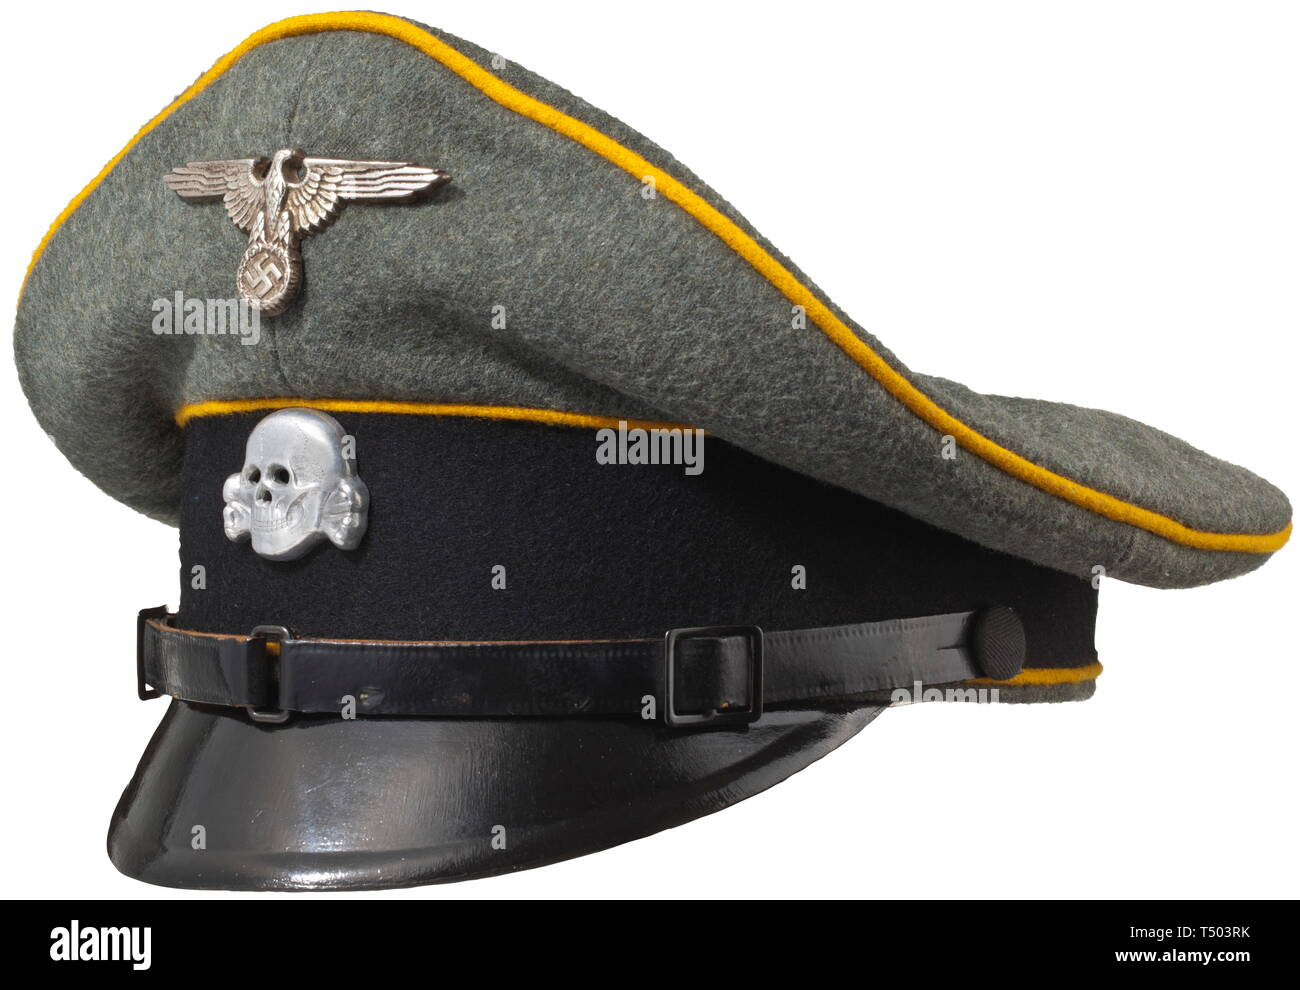 """A visor cap for enlisted men/NCOs of cavalry or reconnaissance units of field-grey wool material with black cap band and golden yellow piping, three-piece black lacquered chin strap and civilian buttons. Yellow cotton liner with size stamping """"57"""" and leather sweat band. Modern insignia. Unissued, colour-fresh. historic, historical, 20th century, 1930s, 1940s, Waffen-SS, armed division of the SS, armed service, armed services, NS, National Socialism, Nazism, Third Reich, German Reich, Germany, military, militaria, utensil, piece of equipment, utensils, object, objects, stil, Editorial-Use-Only Stock Photo"""